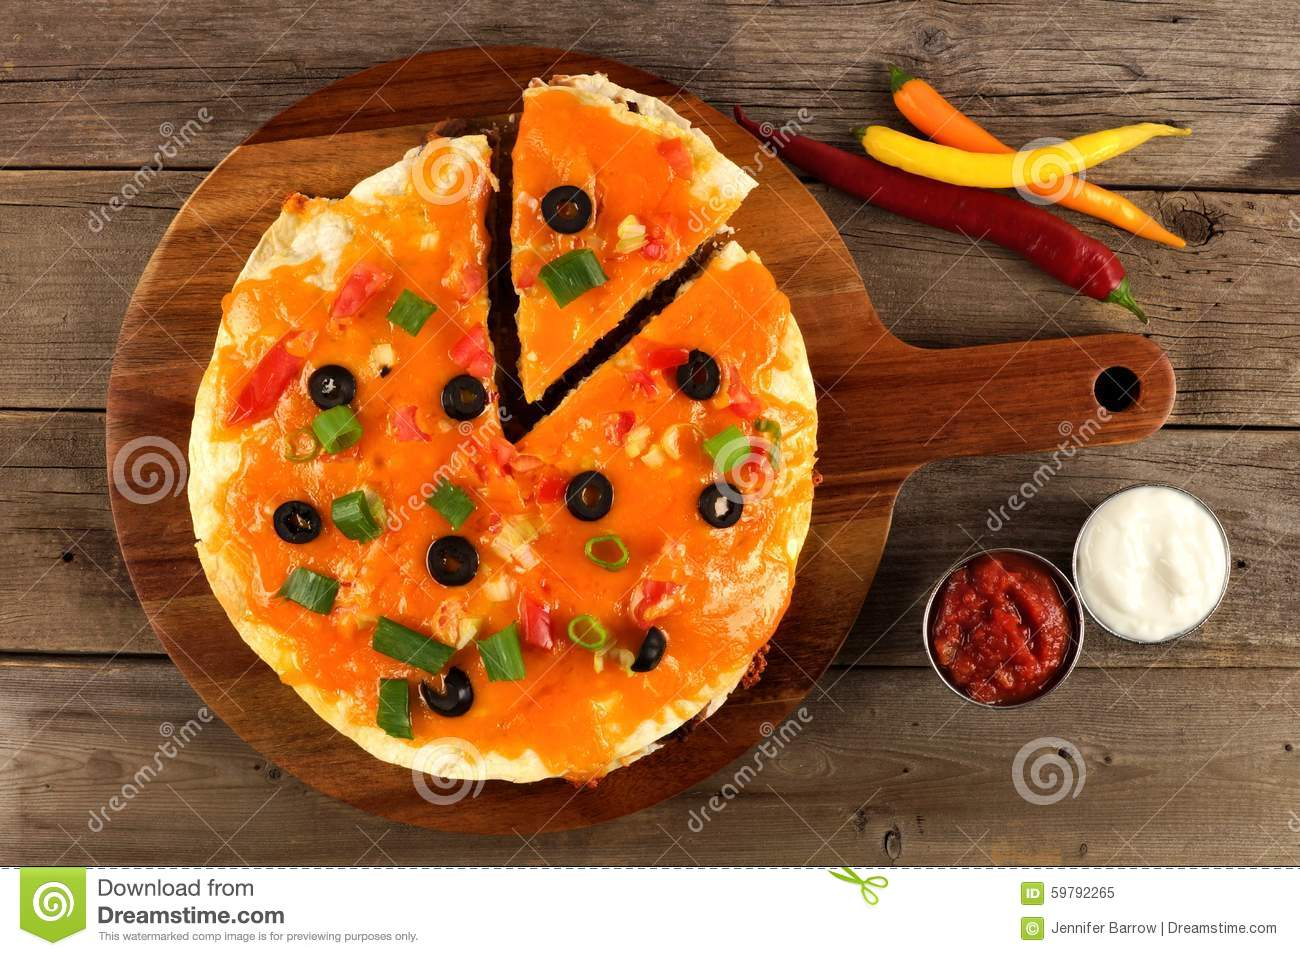 Mexican pizza with cut slice on wood server, downward view